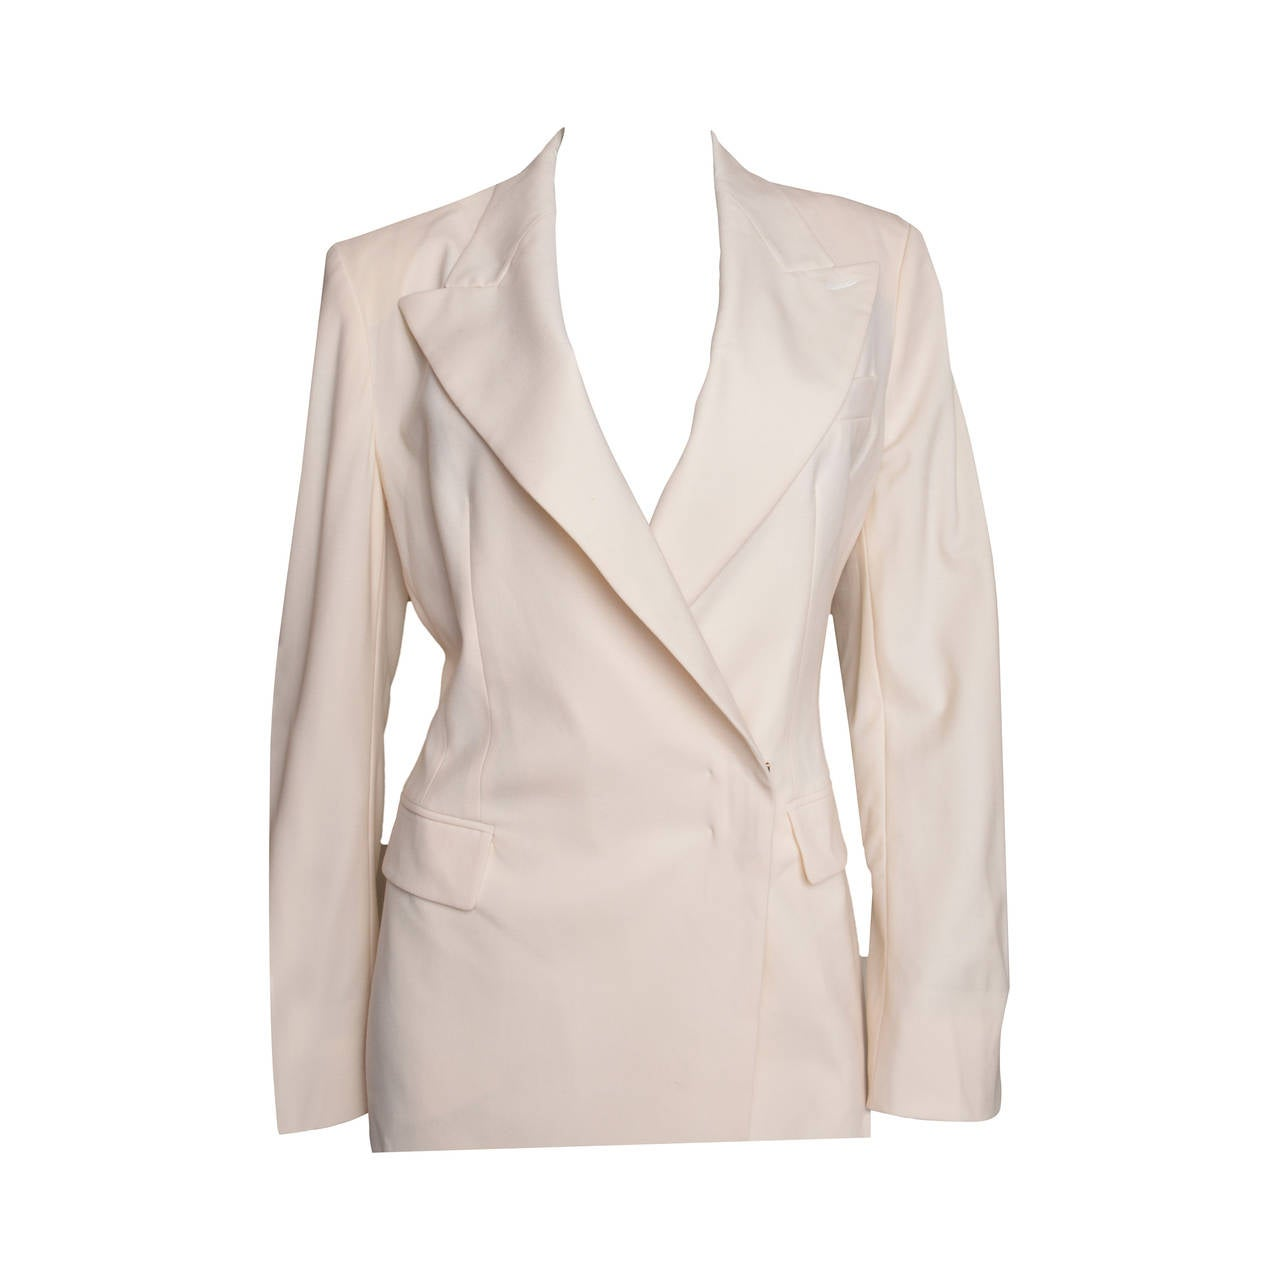 Yves Saint Laurent Rive Gauche Cream Tuxedo Jacket